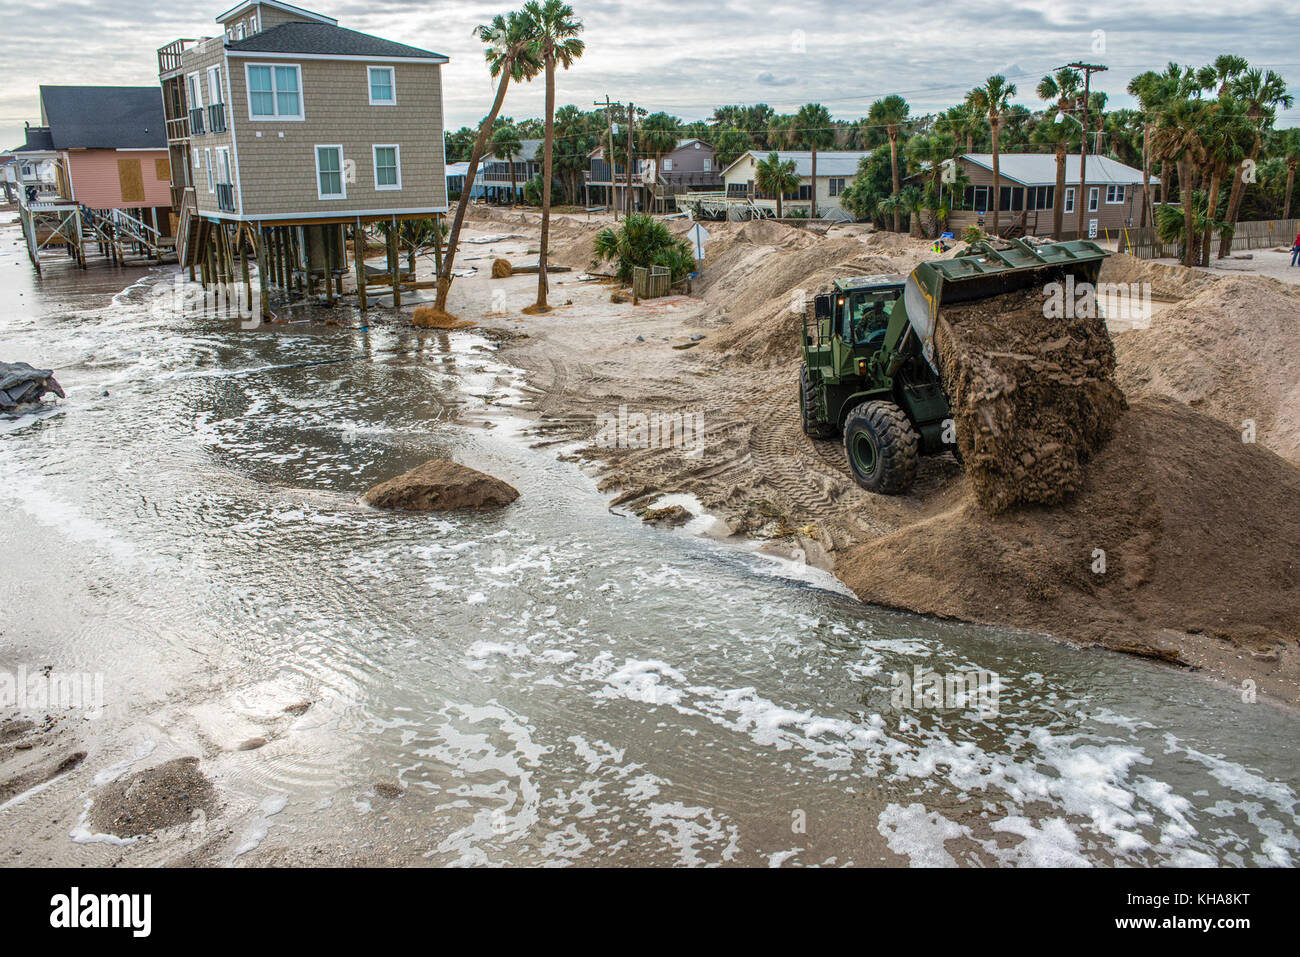 A member of the South Carolina Army National Guard dumps sand while cleaning up after Hurricane Matthew at Edisto - Stock Image